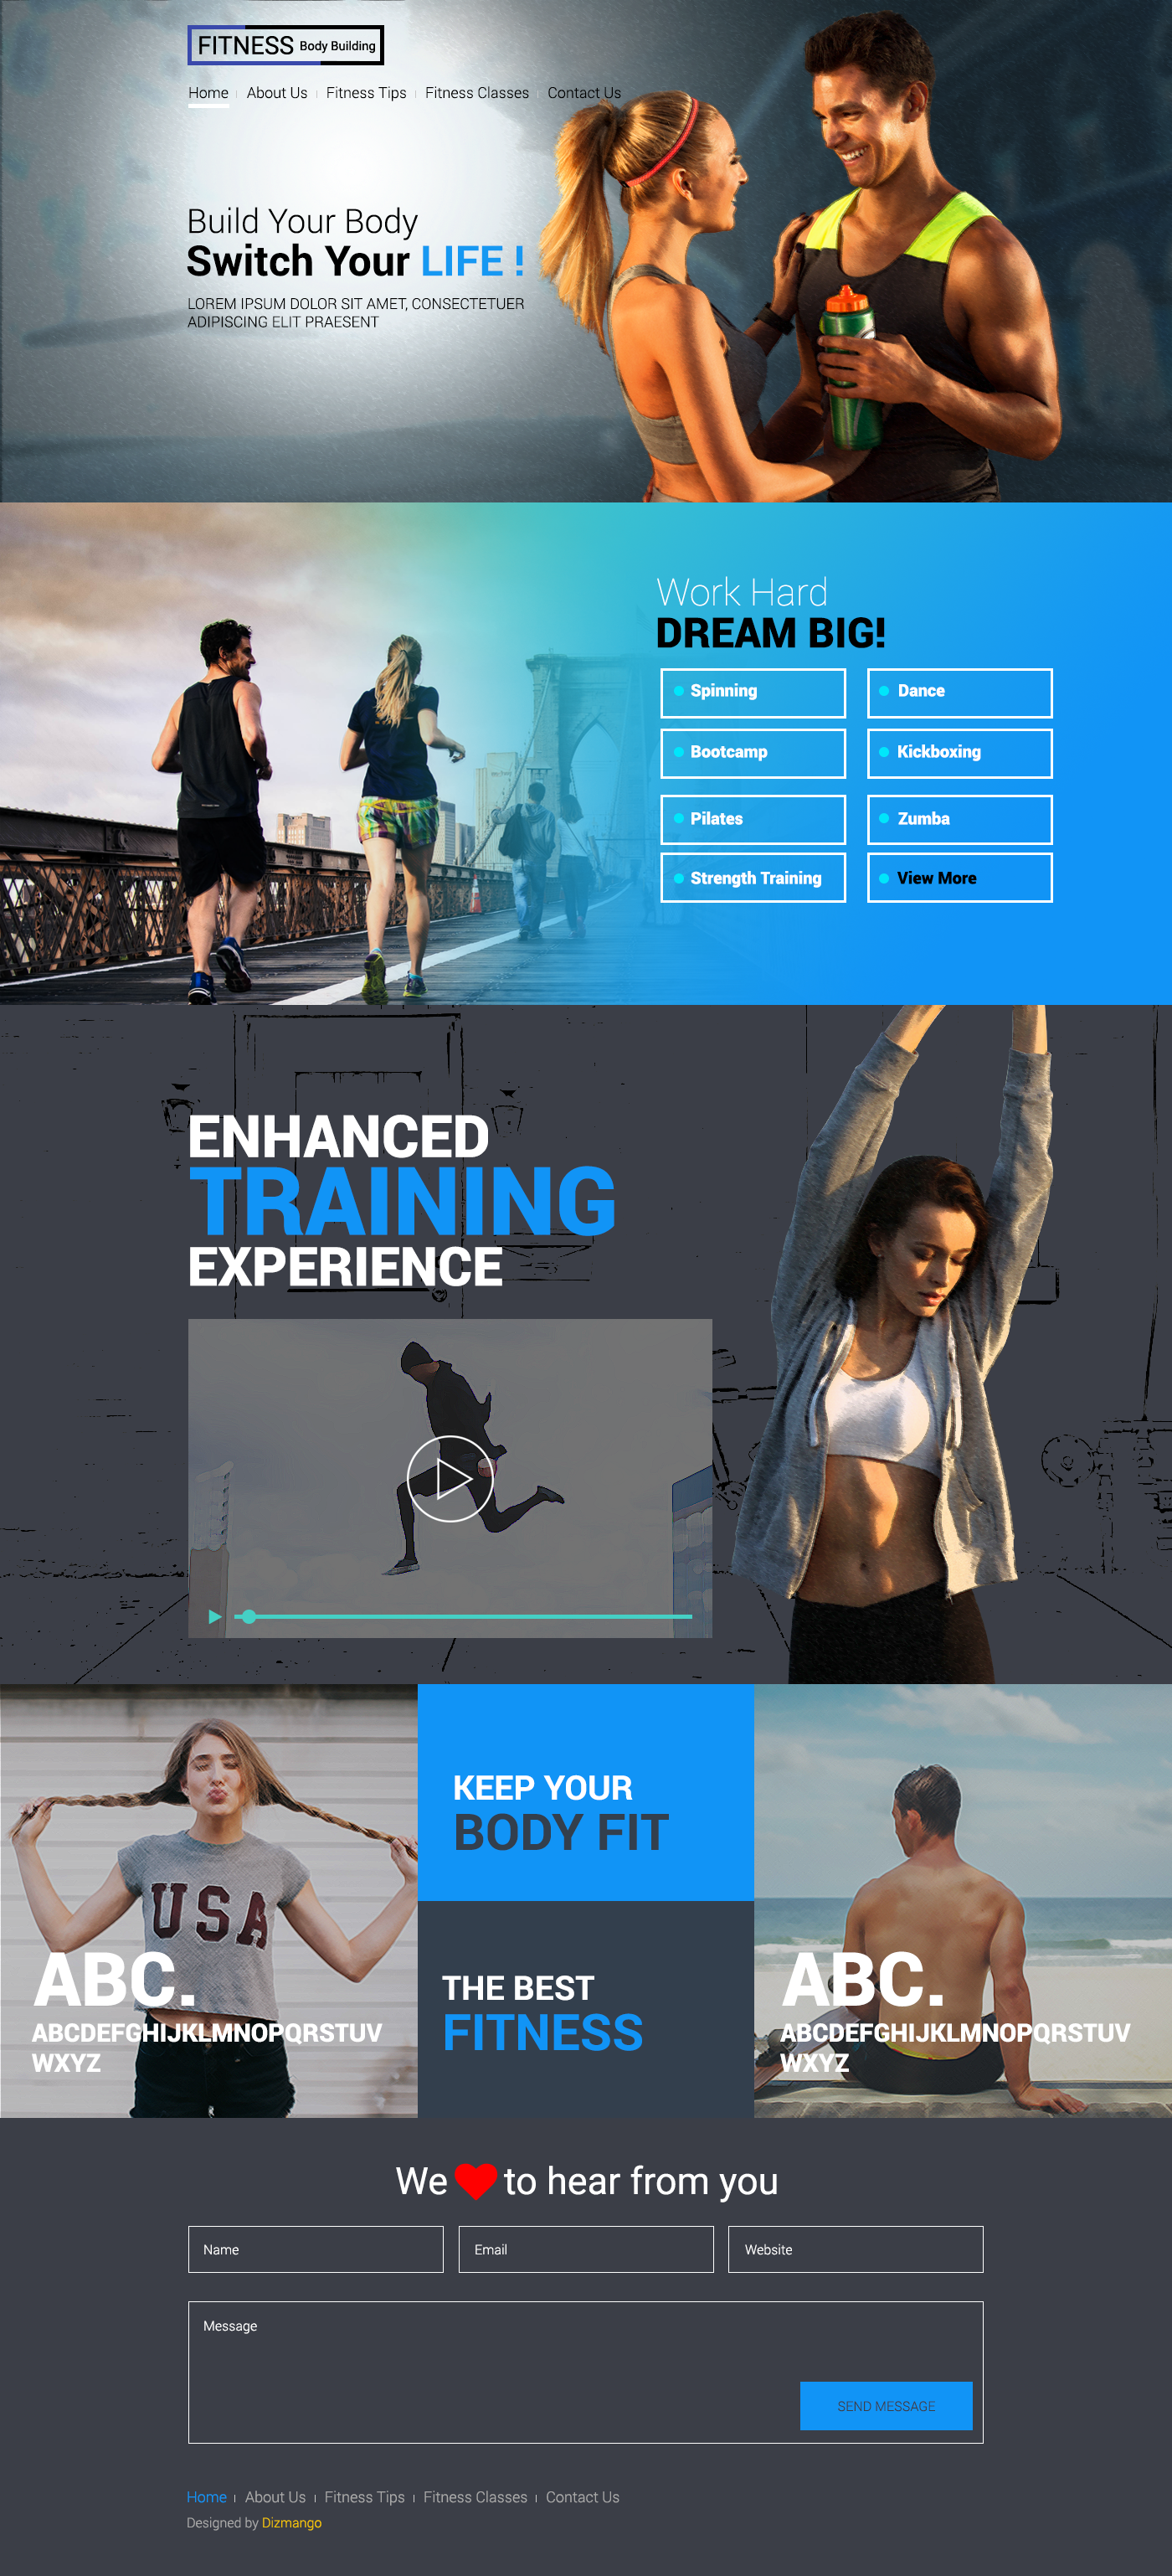 Fitness Is A Landing Web Page Designed For Fitness Center Health Products Fitness Is A Landing Web Page Desig Free Website Templates Website Template Design